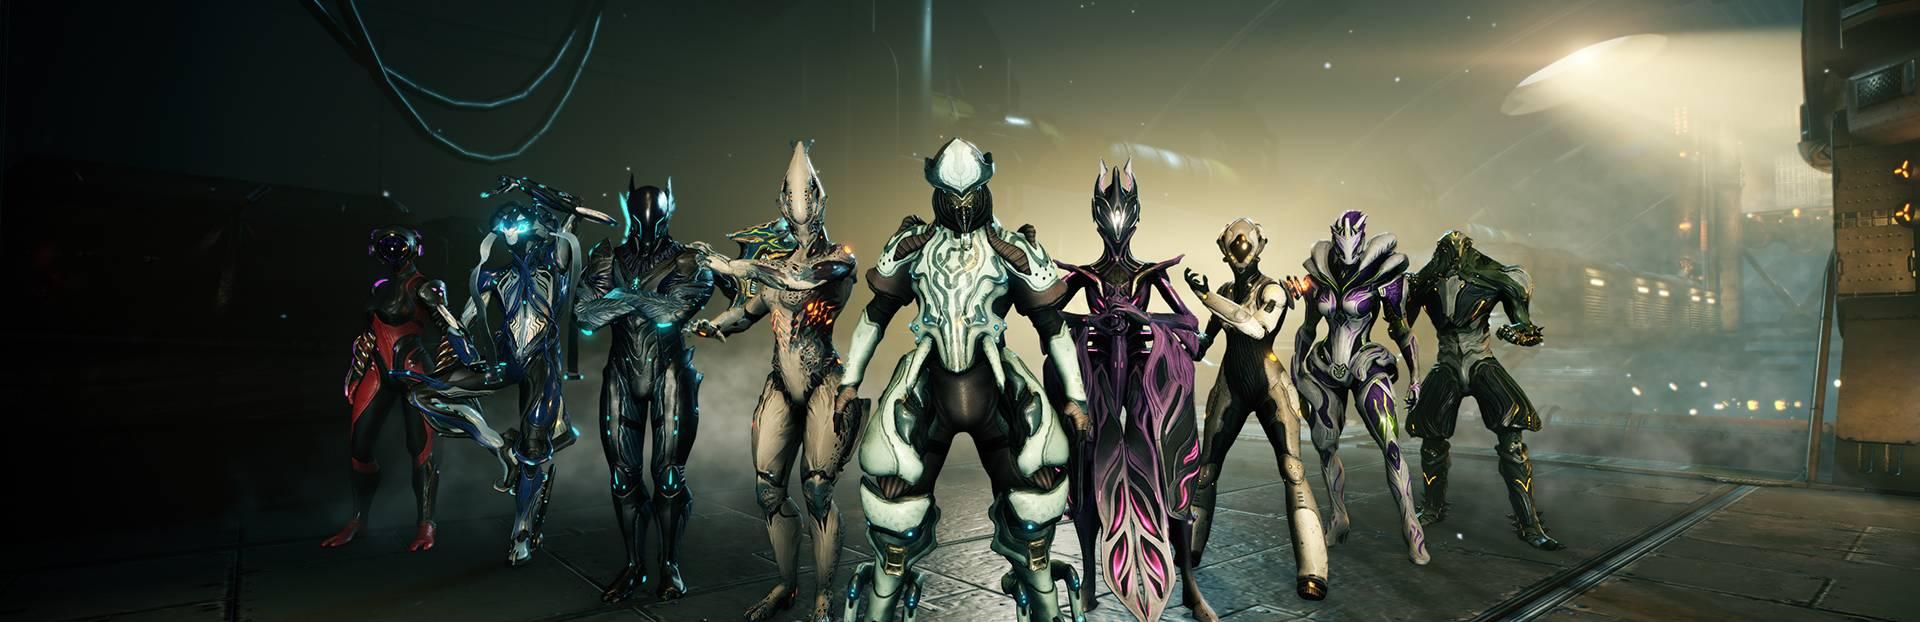 Chains of Harrow: Update 21 5 0 - PC Update Notes - Warframe